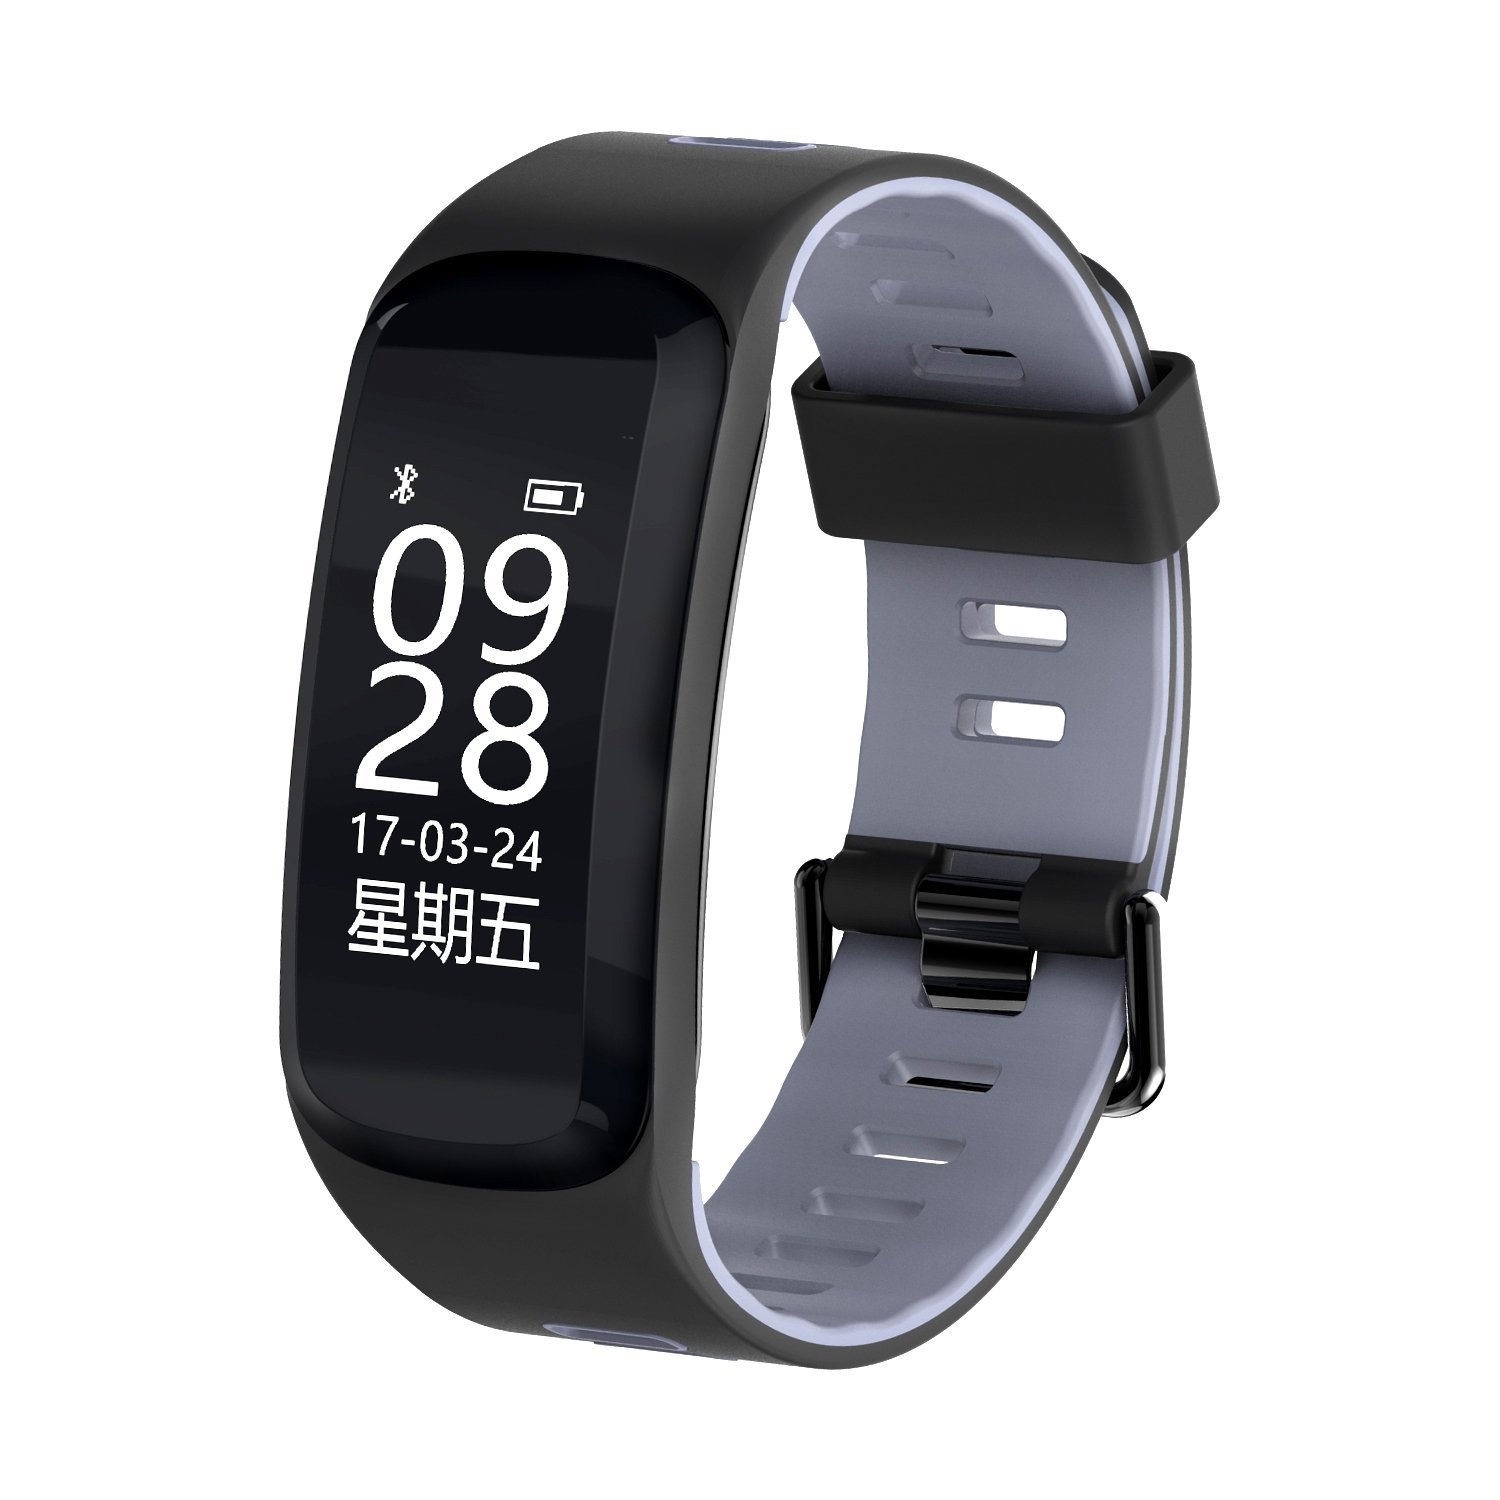 GIMTVTION F4 Fitness Tracker ,Pashion Bluetooth 4.0 Heart Rate Monitor Watch Step Walking Sleep Counter Wireless Smart Wristband Pedometer Waterproof Sports Bracelet for IOS Android System